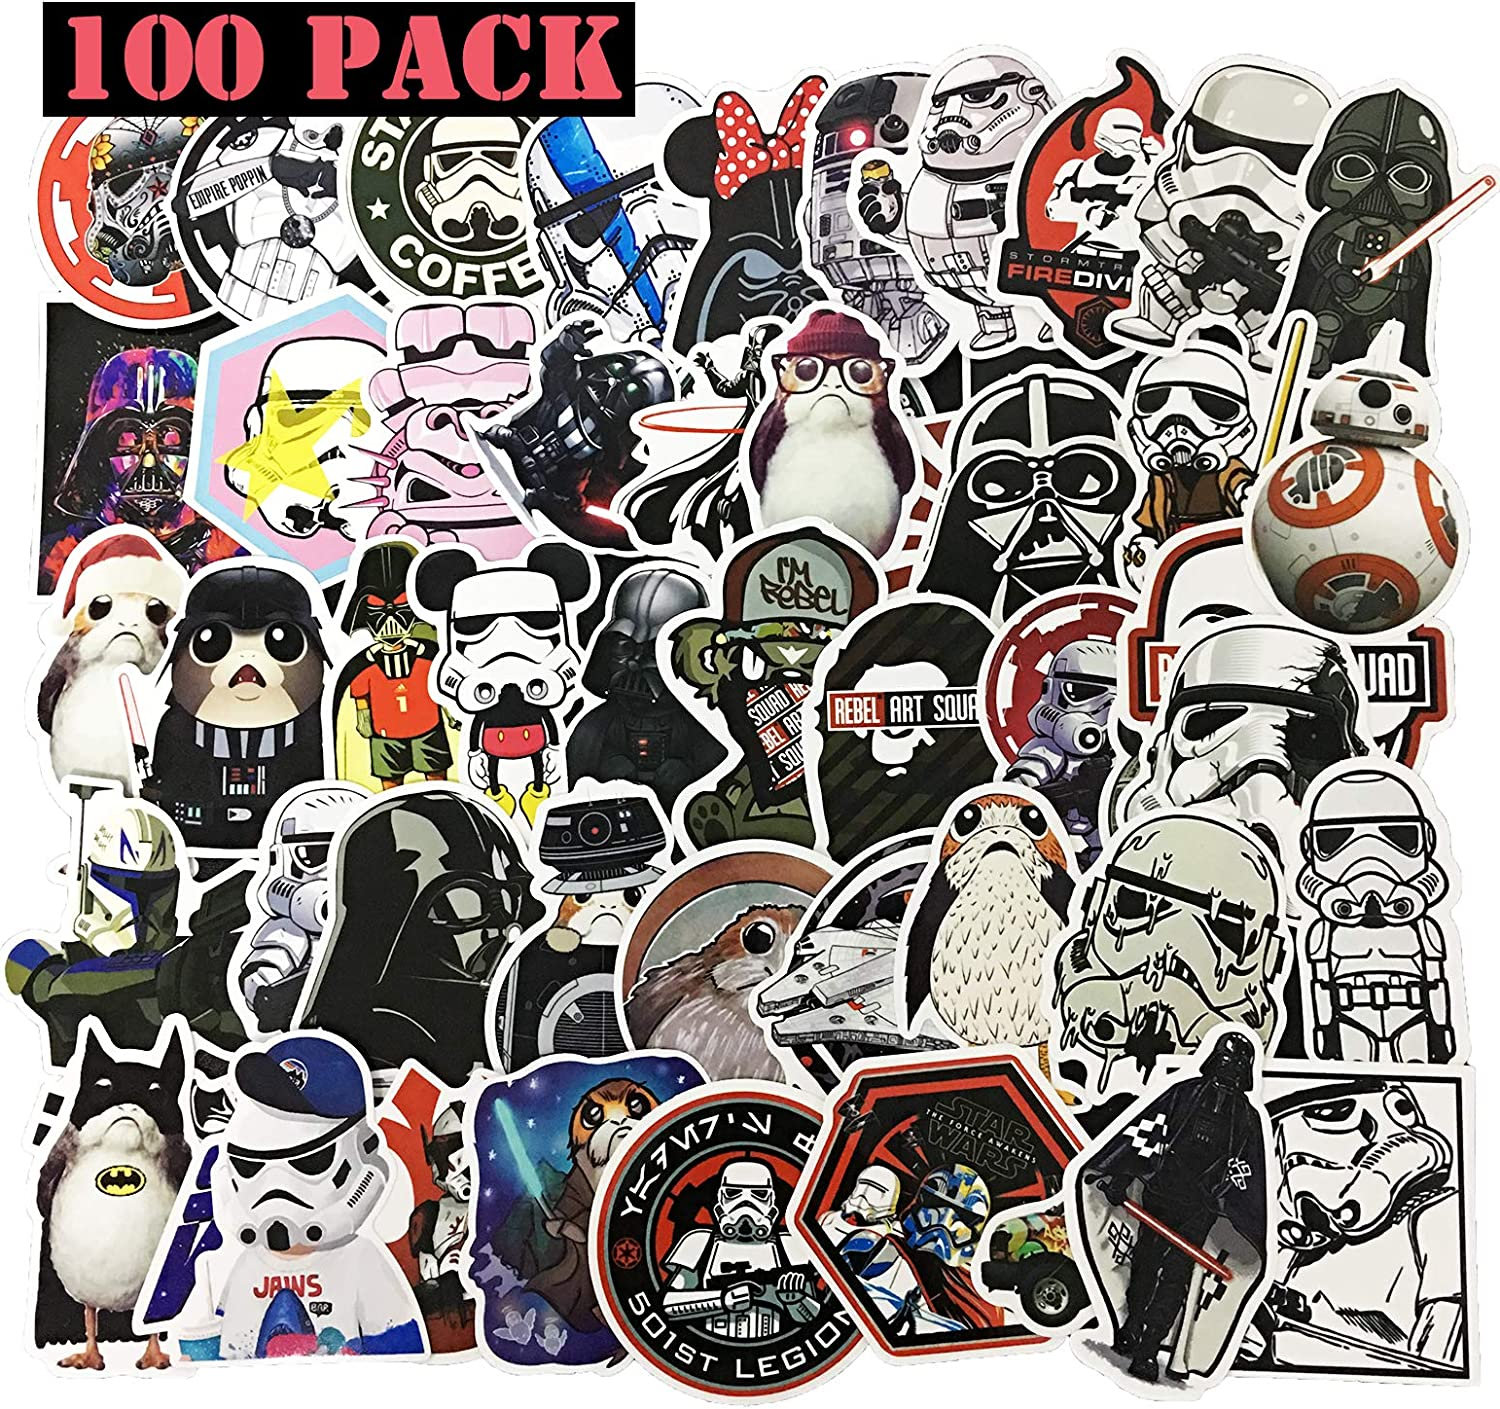 EHOPE Star Wars Stickers,Star Wars Laptop Stickers for Teens Boys Girls Vinyl Stickers for Laptop Waterproof PVC Suitcase Computer Car Bike Bumper Luggage Bicycle Motorcycle Skateboard (100 PCS)